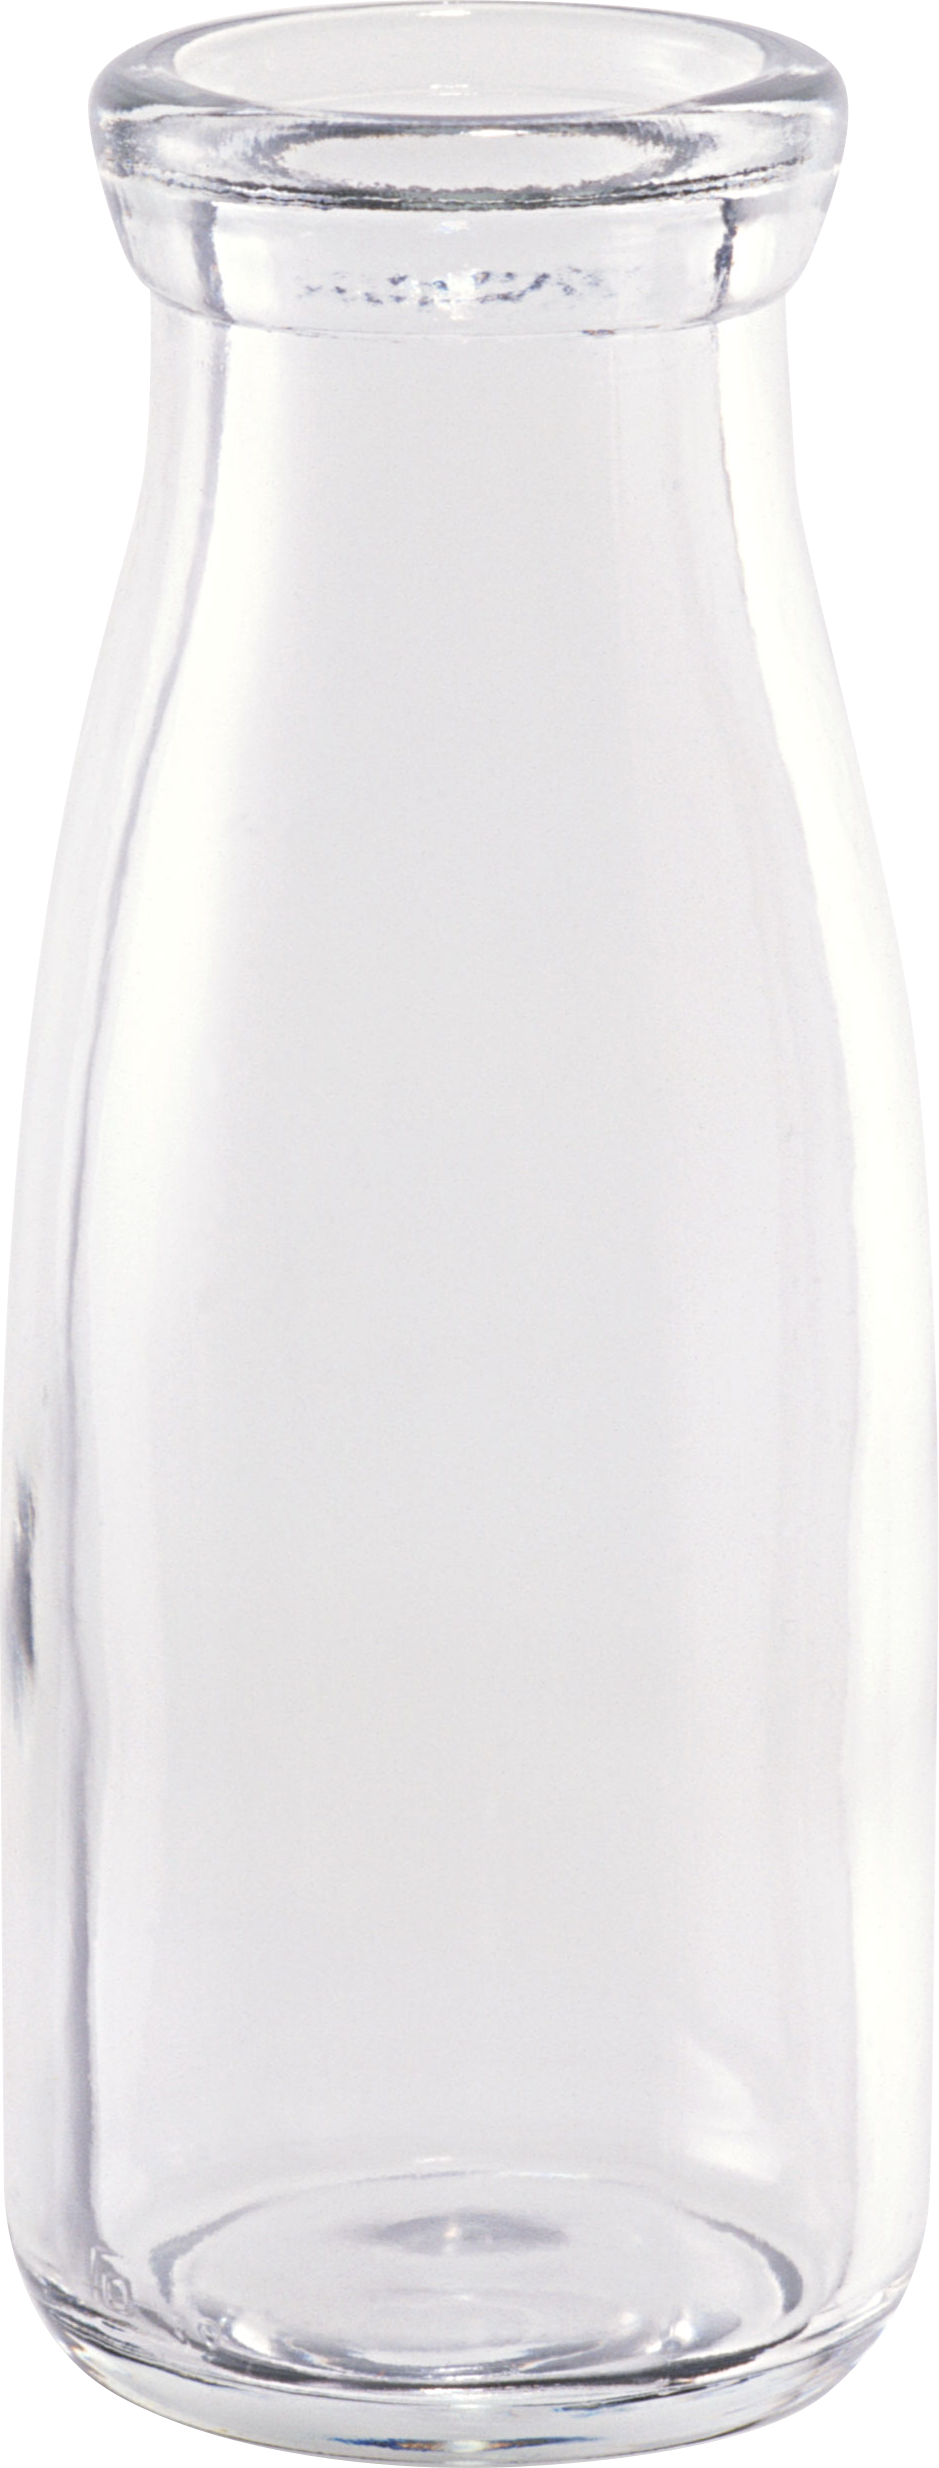 empty glass bottle PNG image